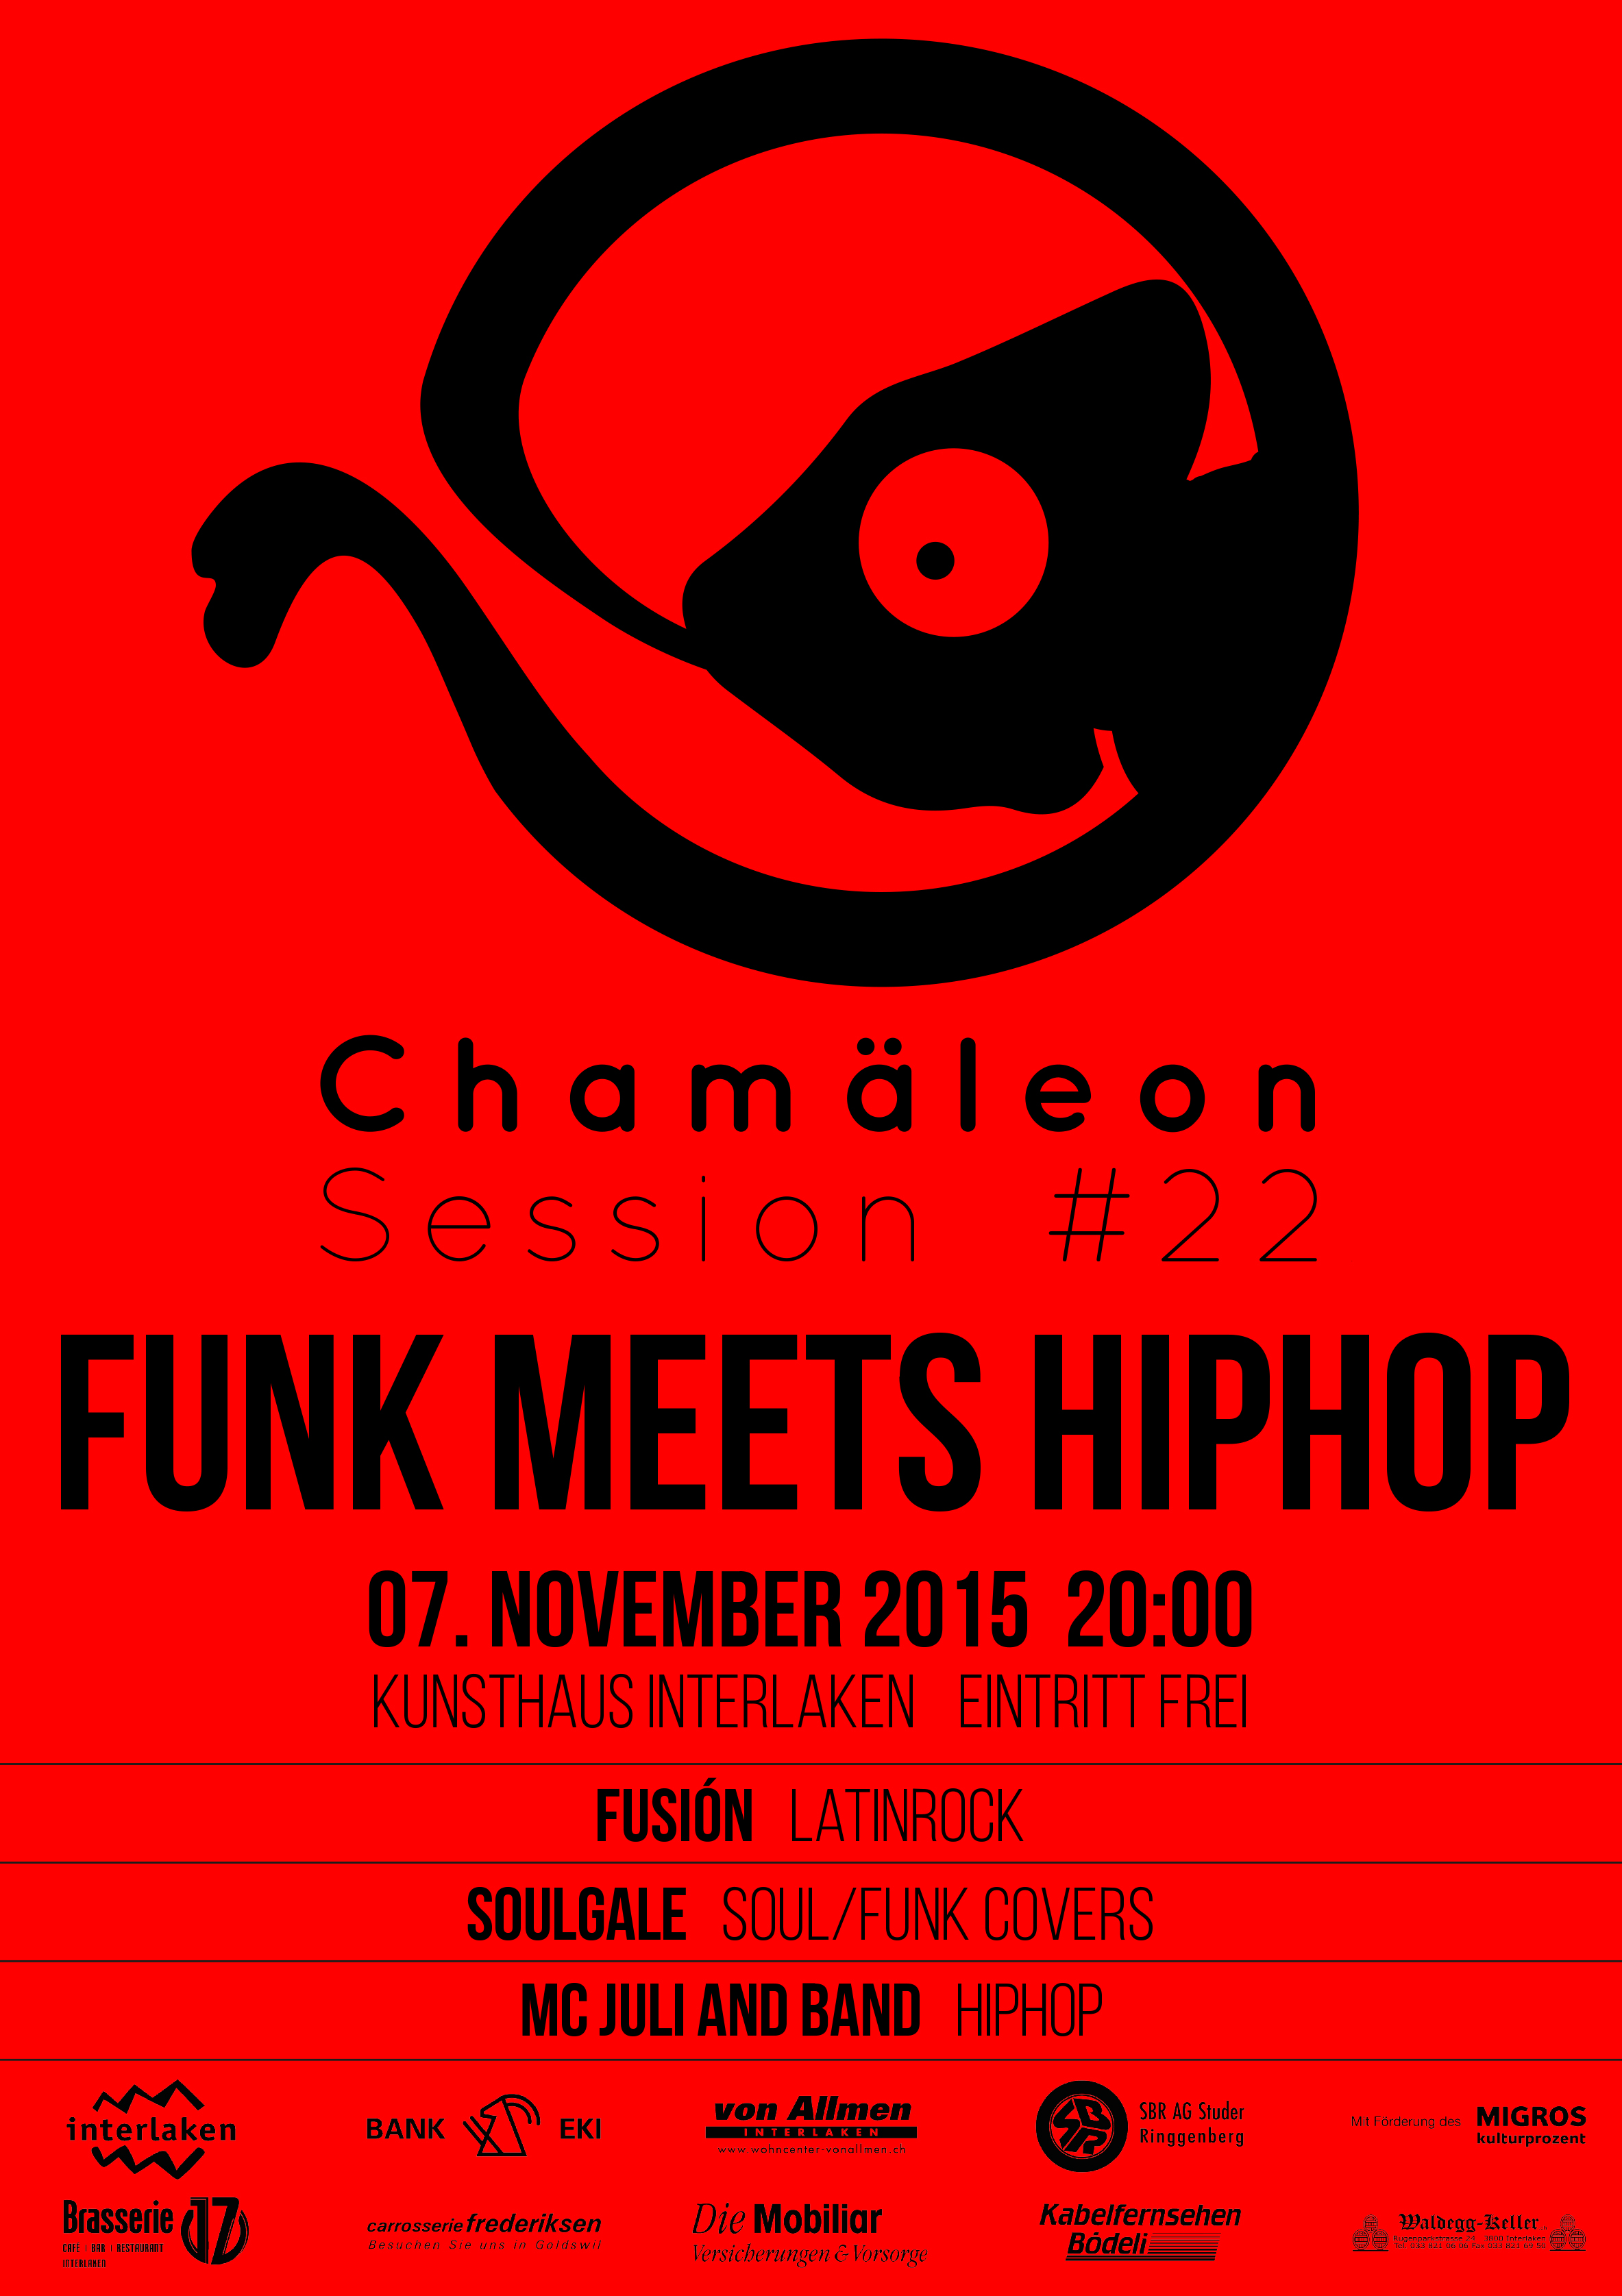 Plakat-Session 22 Funk meets Hiphop